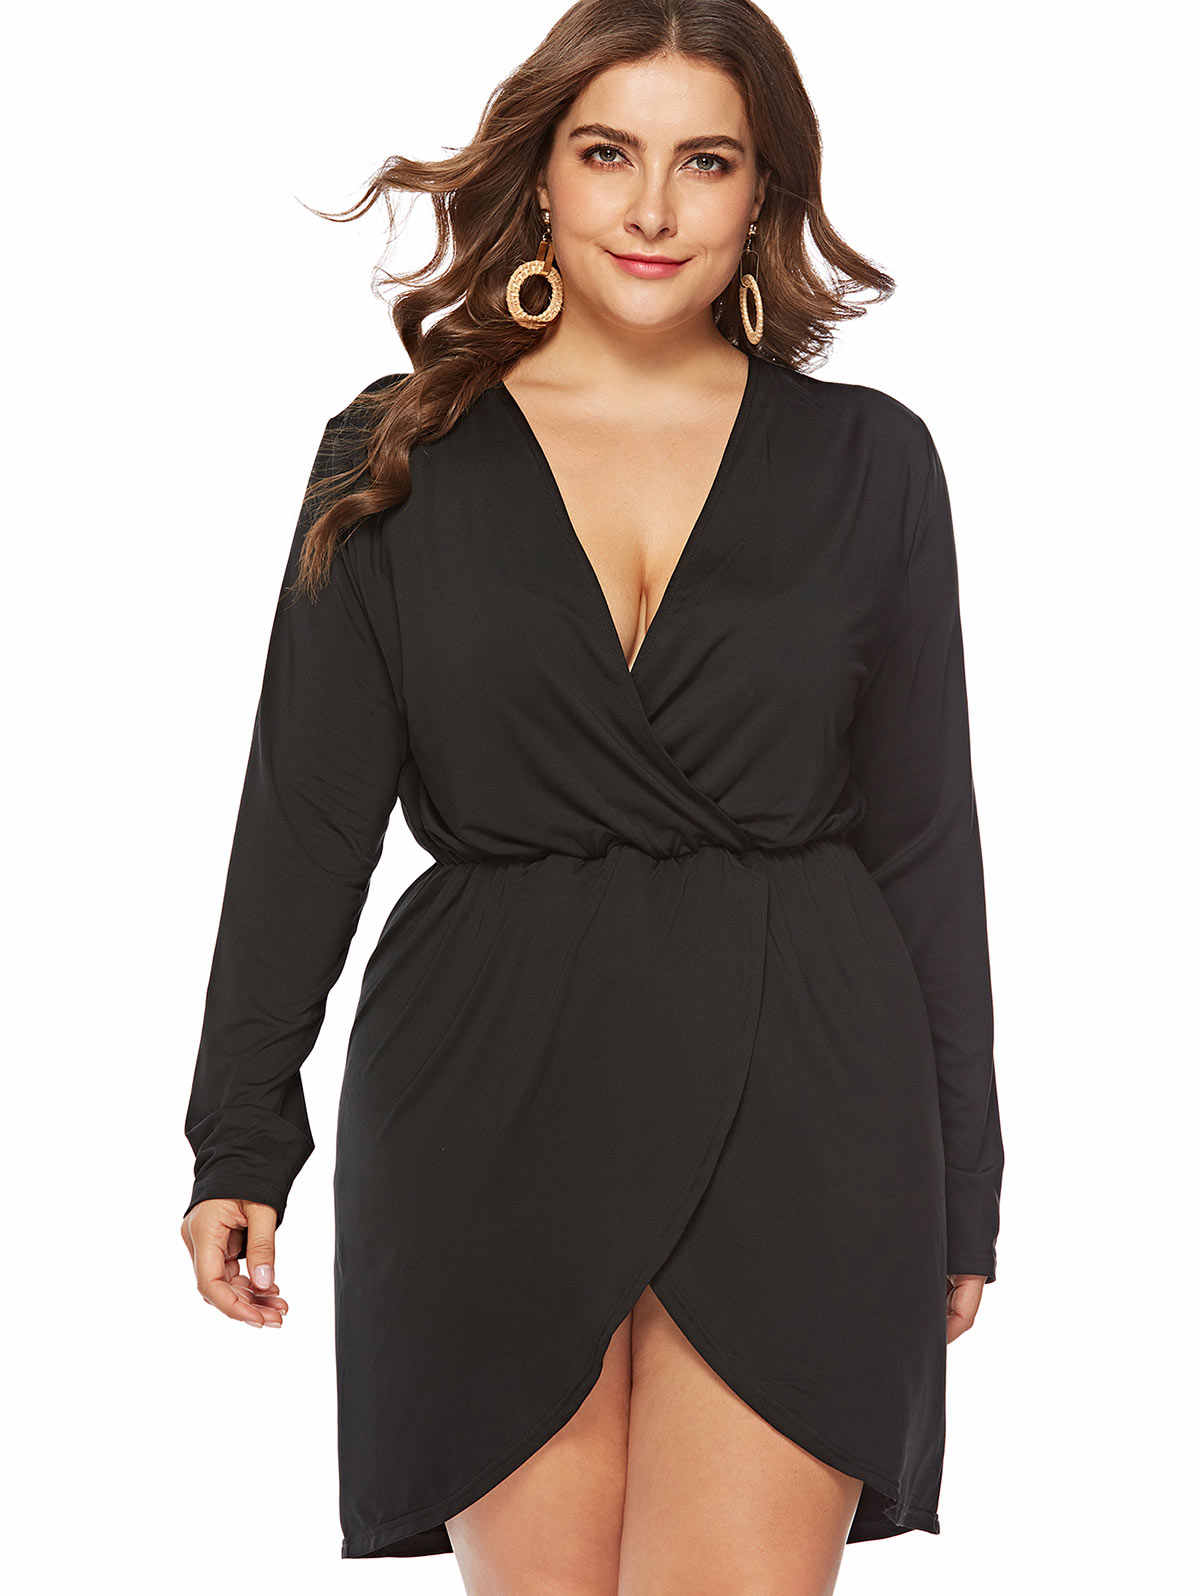 204f586311b Wipalo Plus Size Women Dress Sexy Plunge Neck Long Sleeve Solid Color  High-Low Dresses